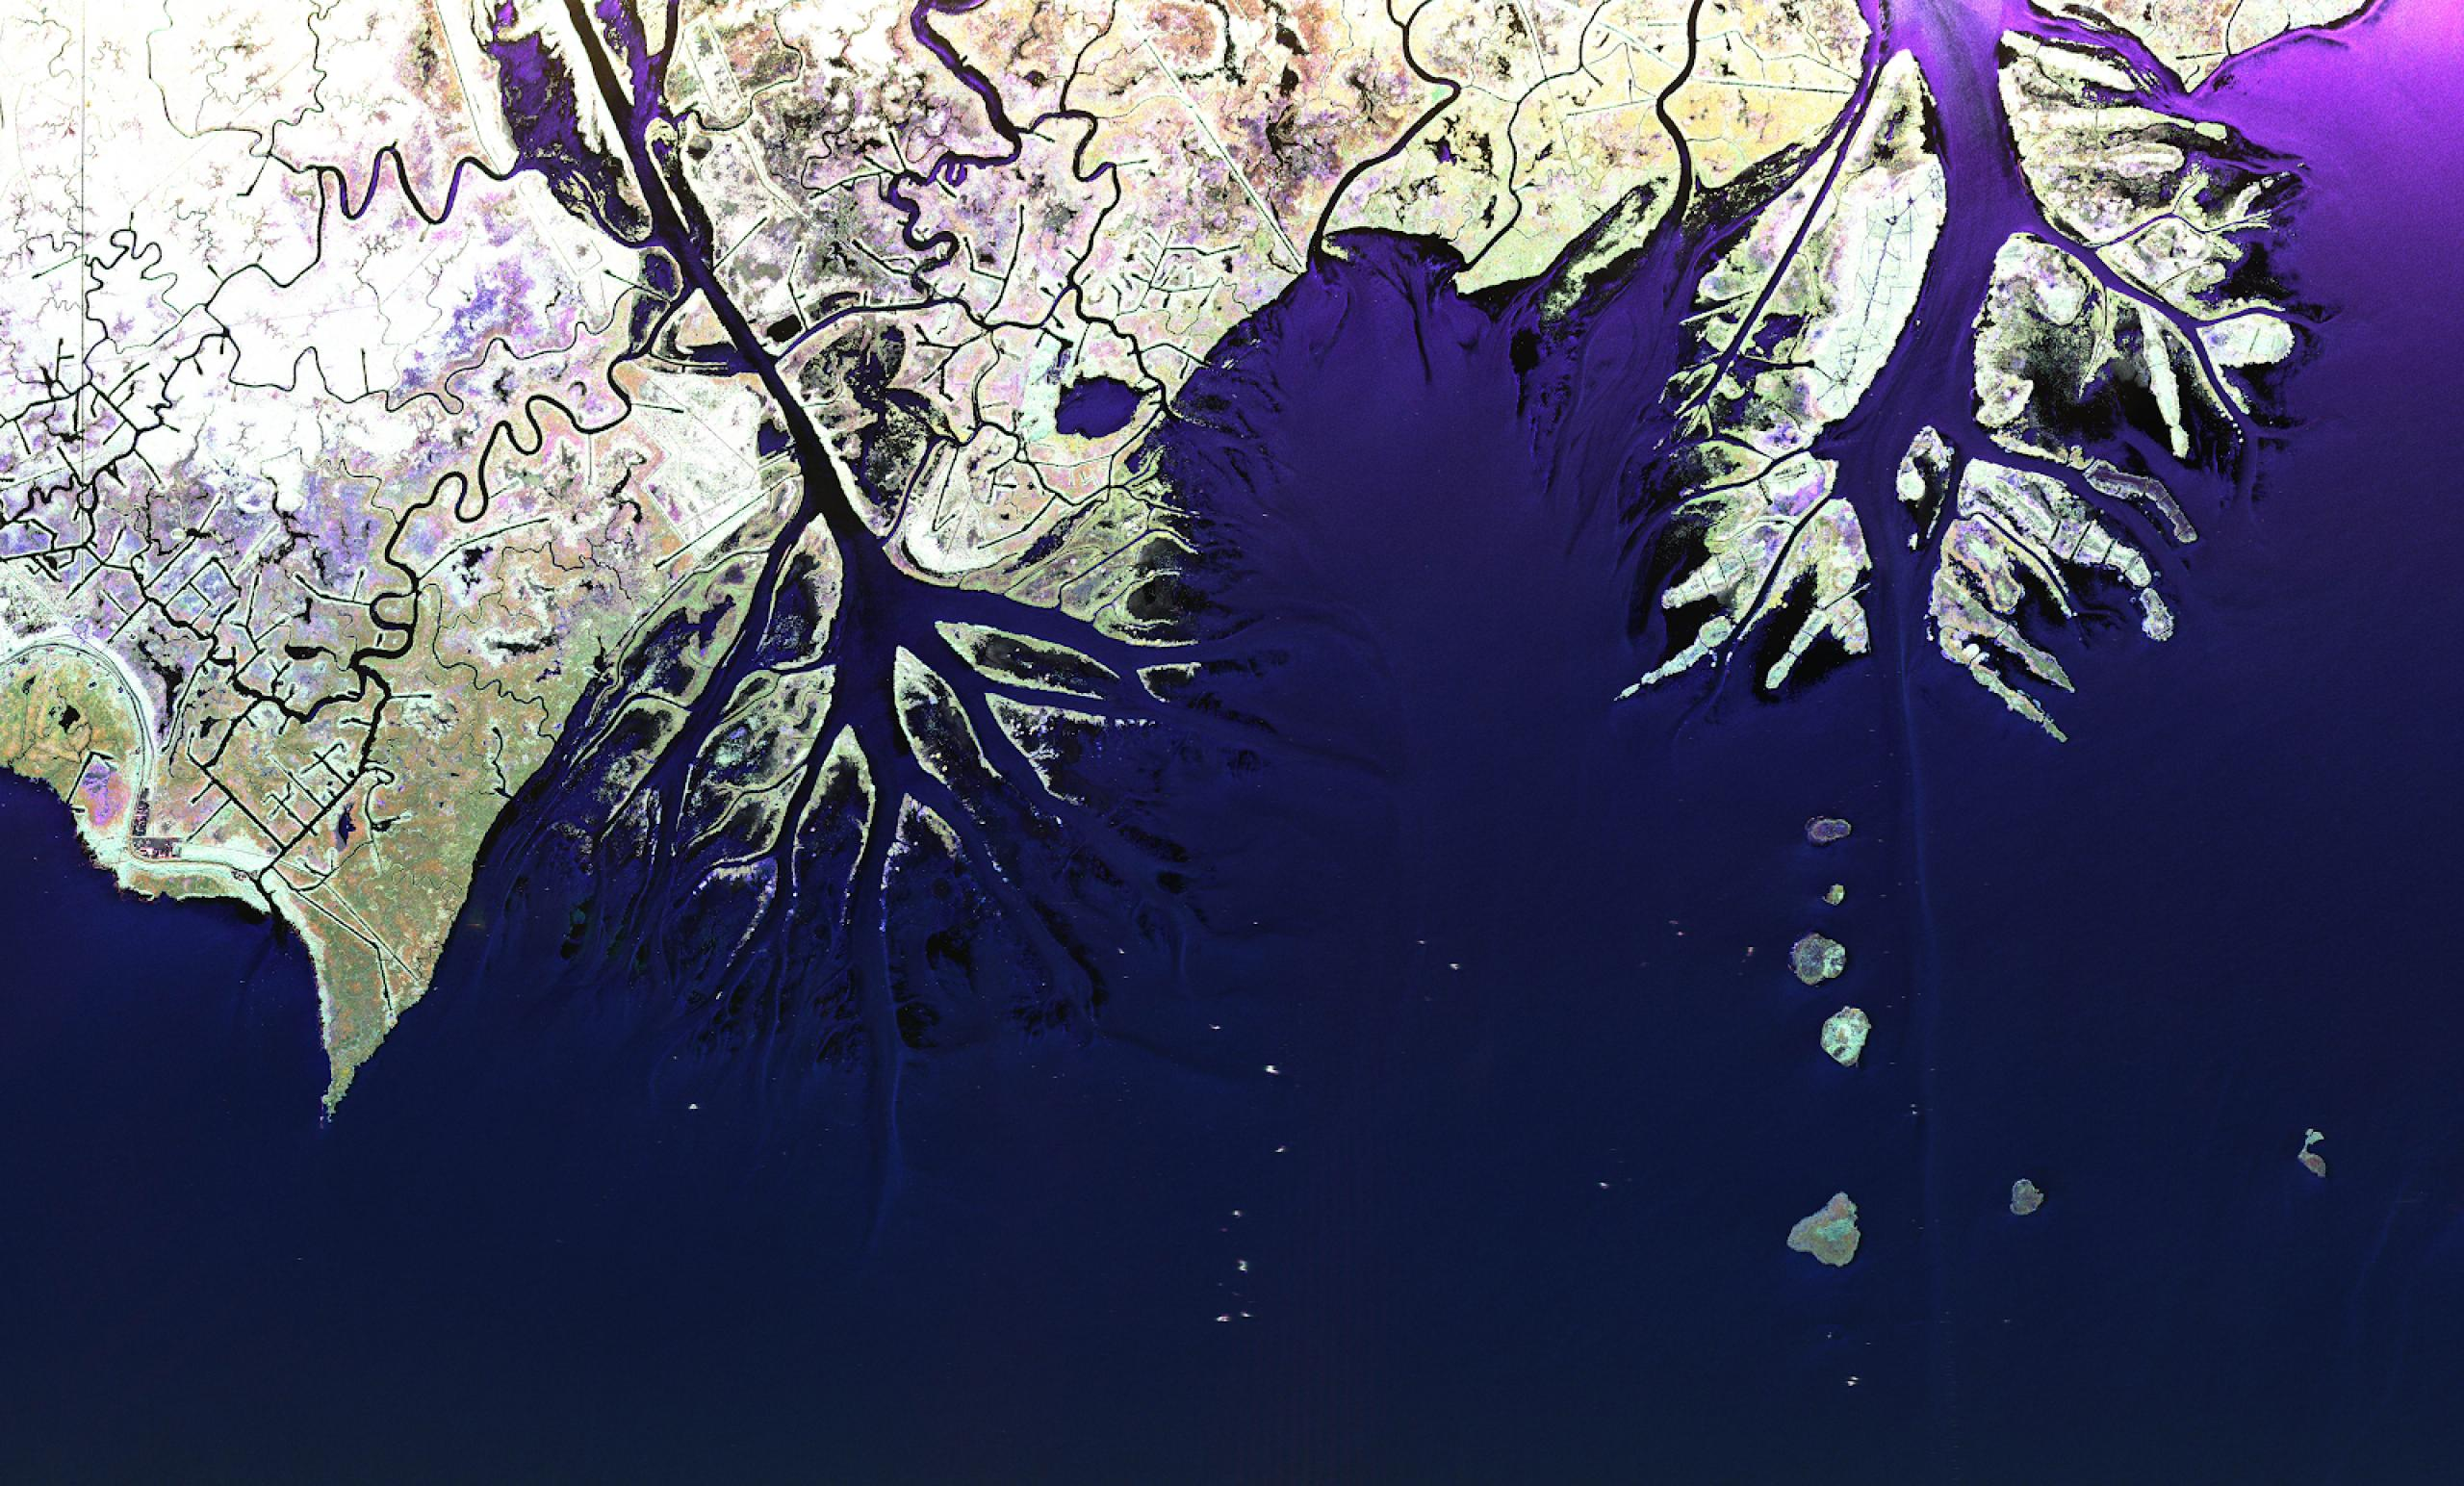 Satellite image of land meeting a body of water